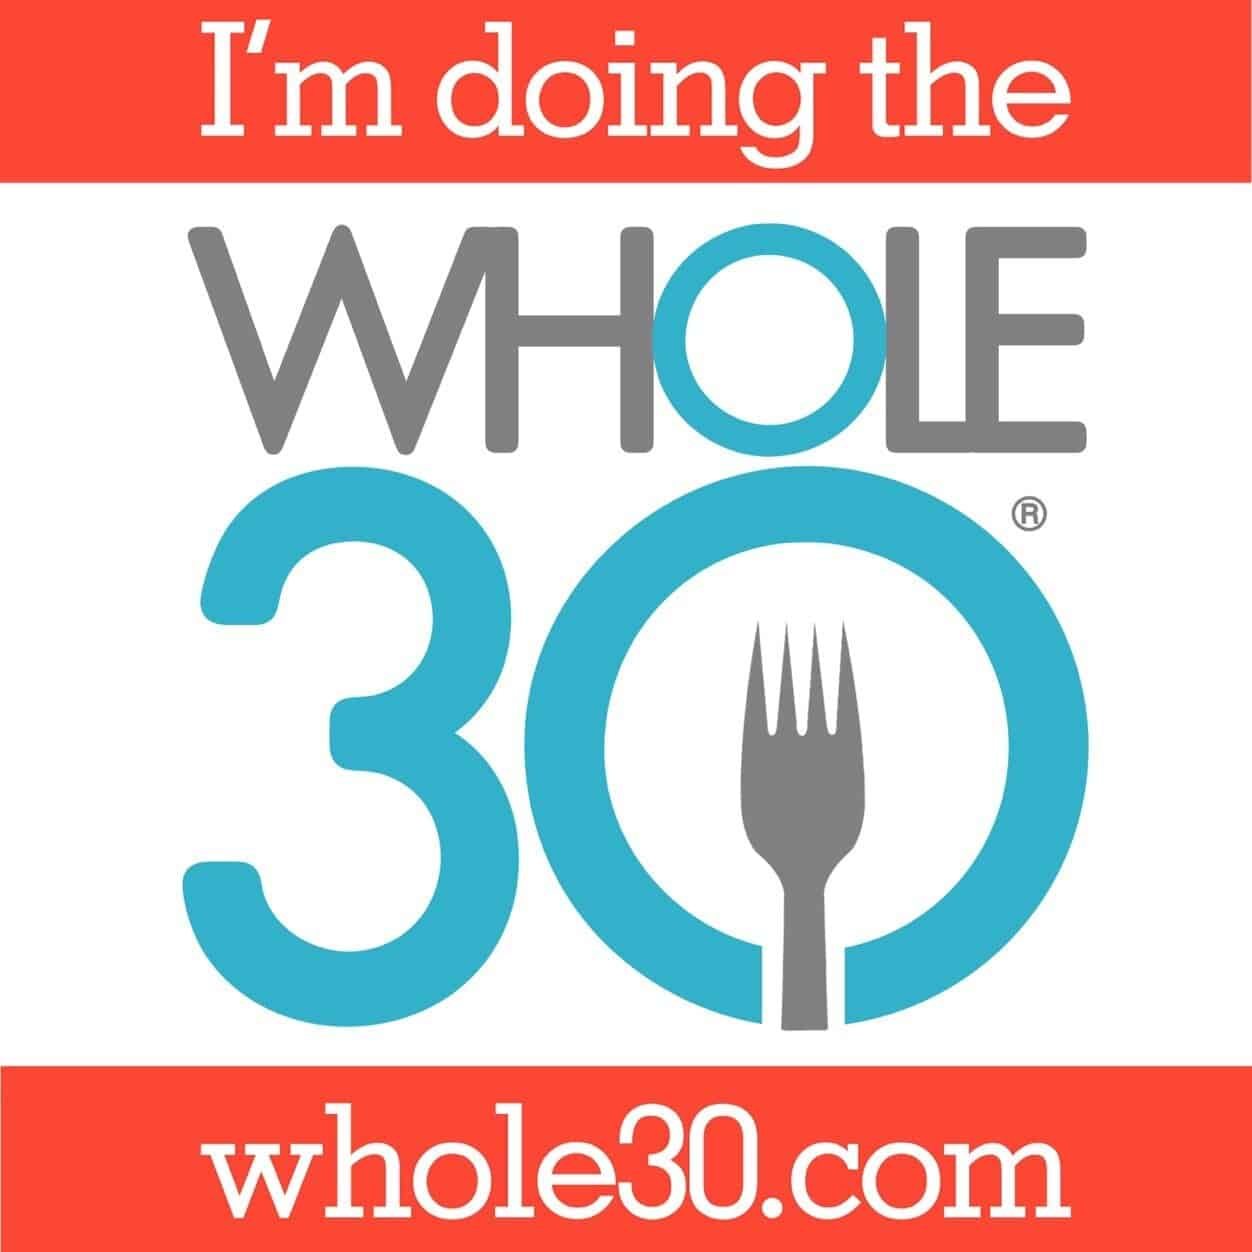 I am doing the Whole30 badge